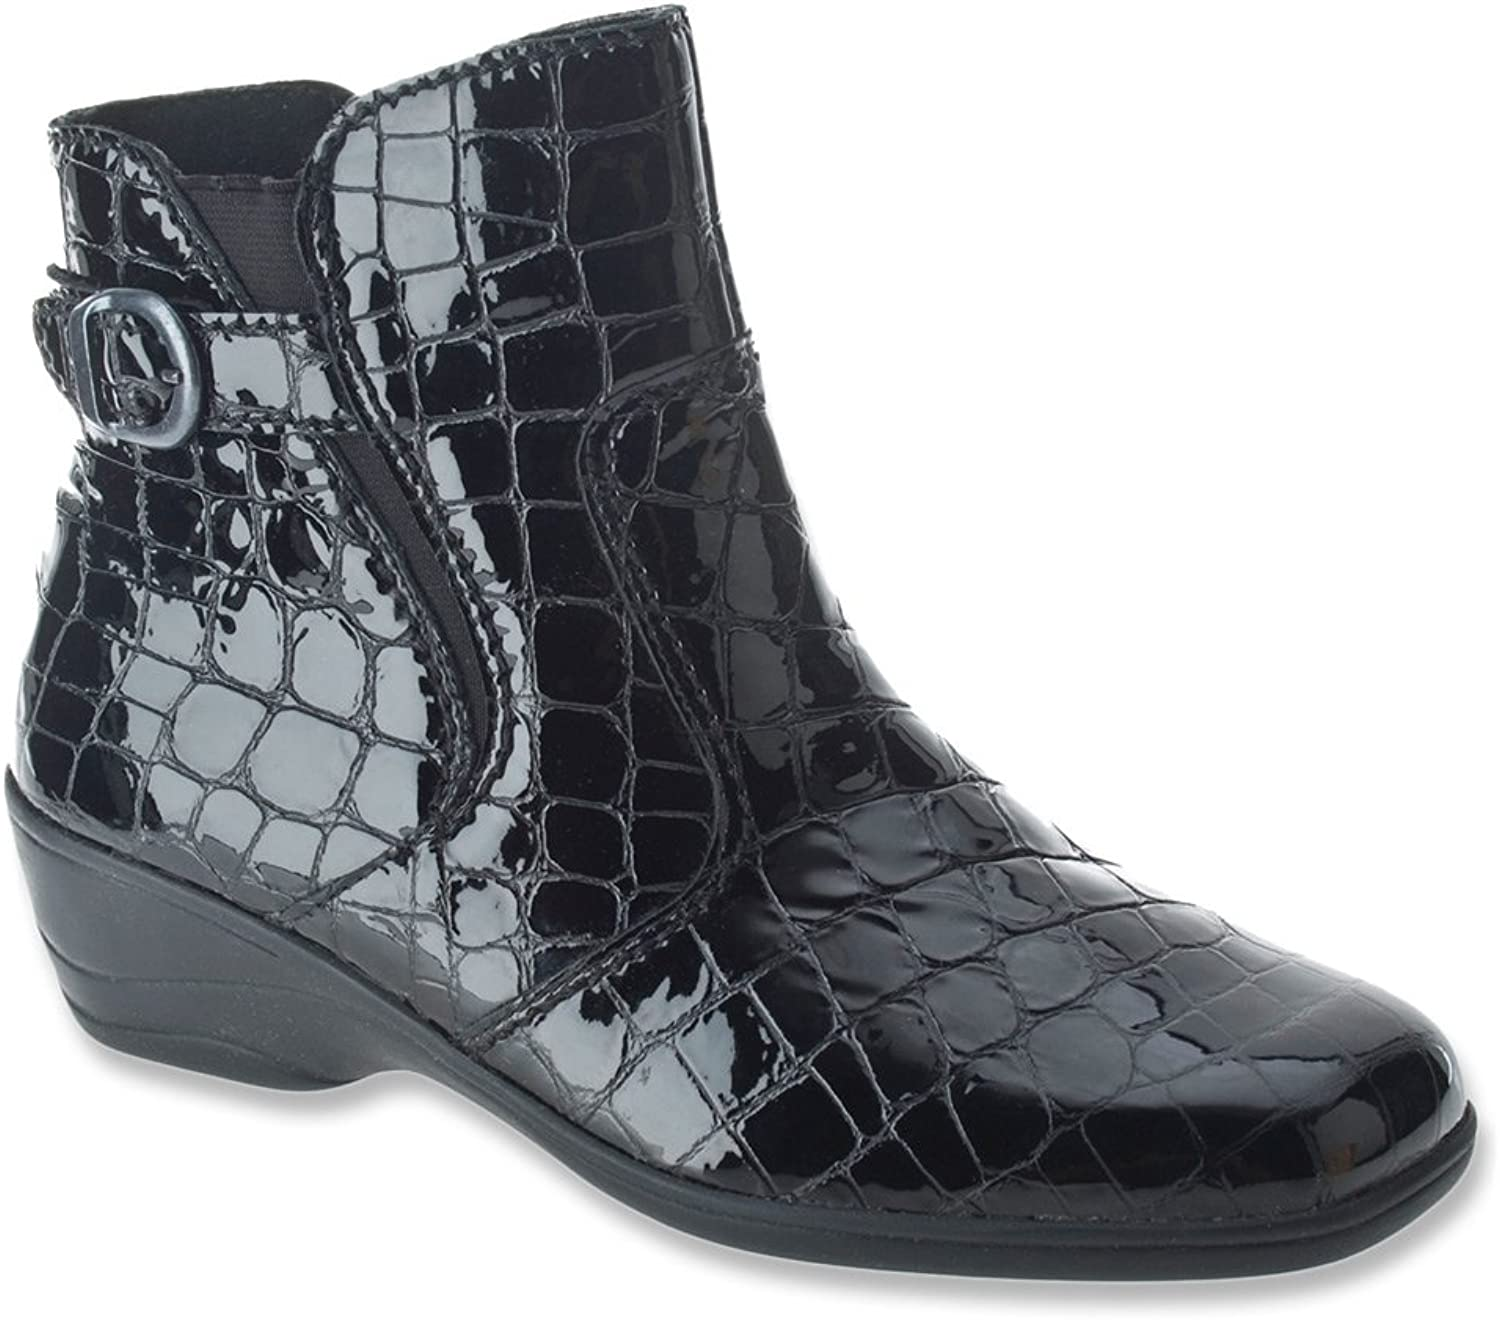 Spring Step Women's Jacey II Ankle Boot Black boots 41 M